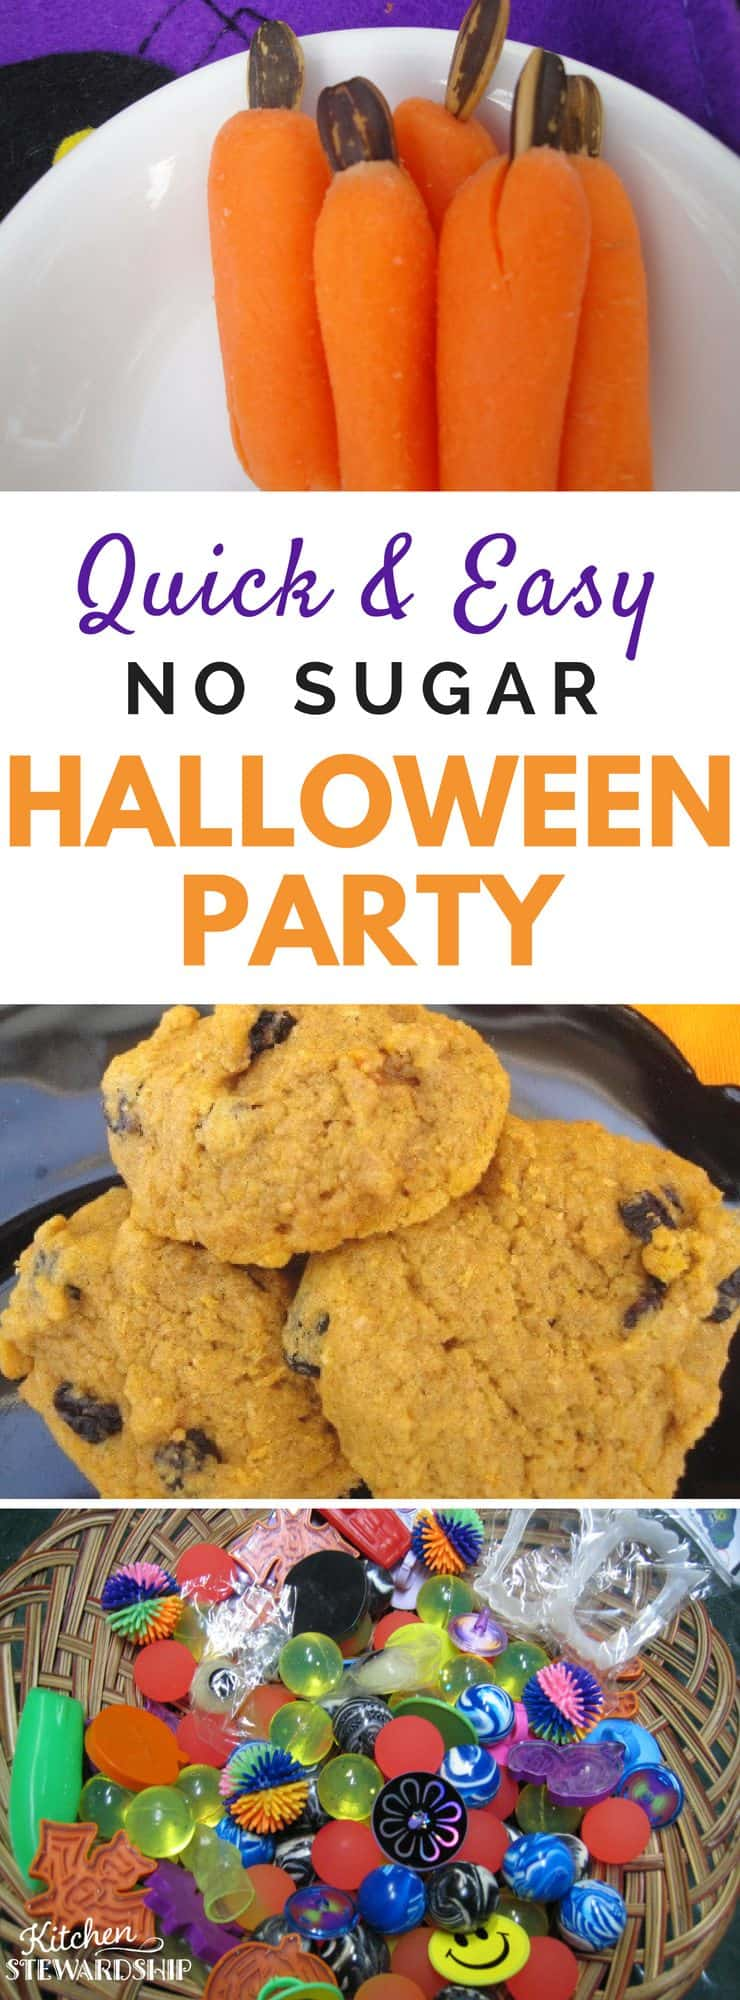 Healthy school Halloween party plan, complete with more food ideas than you need plus games, activities, and minimal prep work needed.